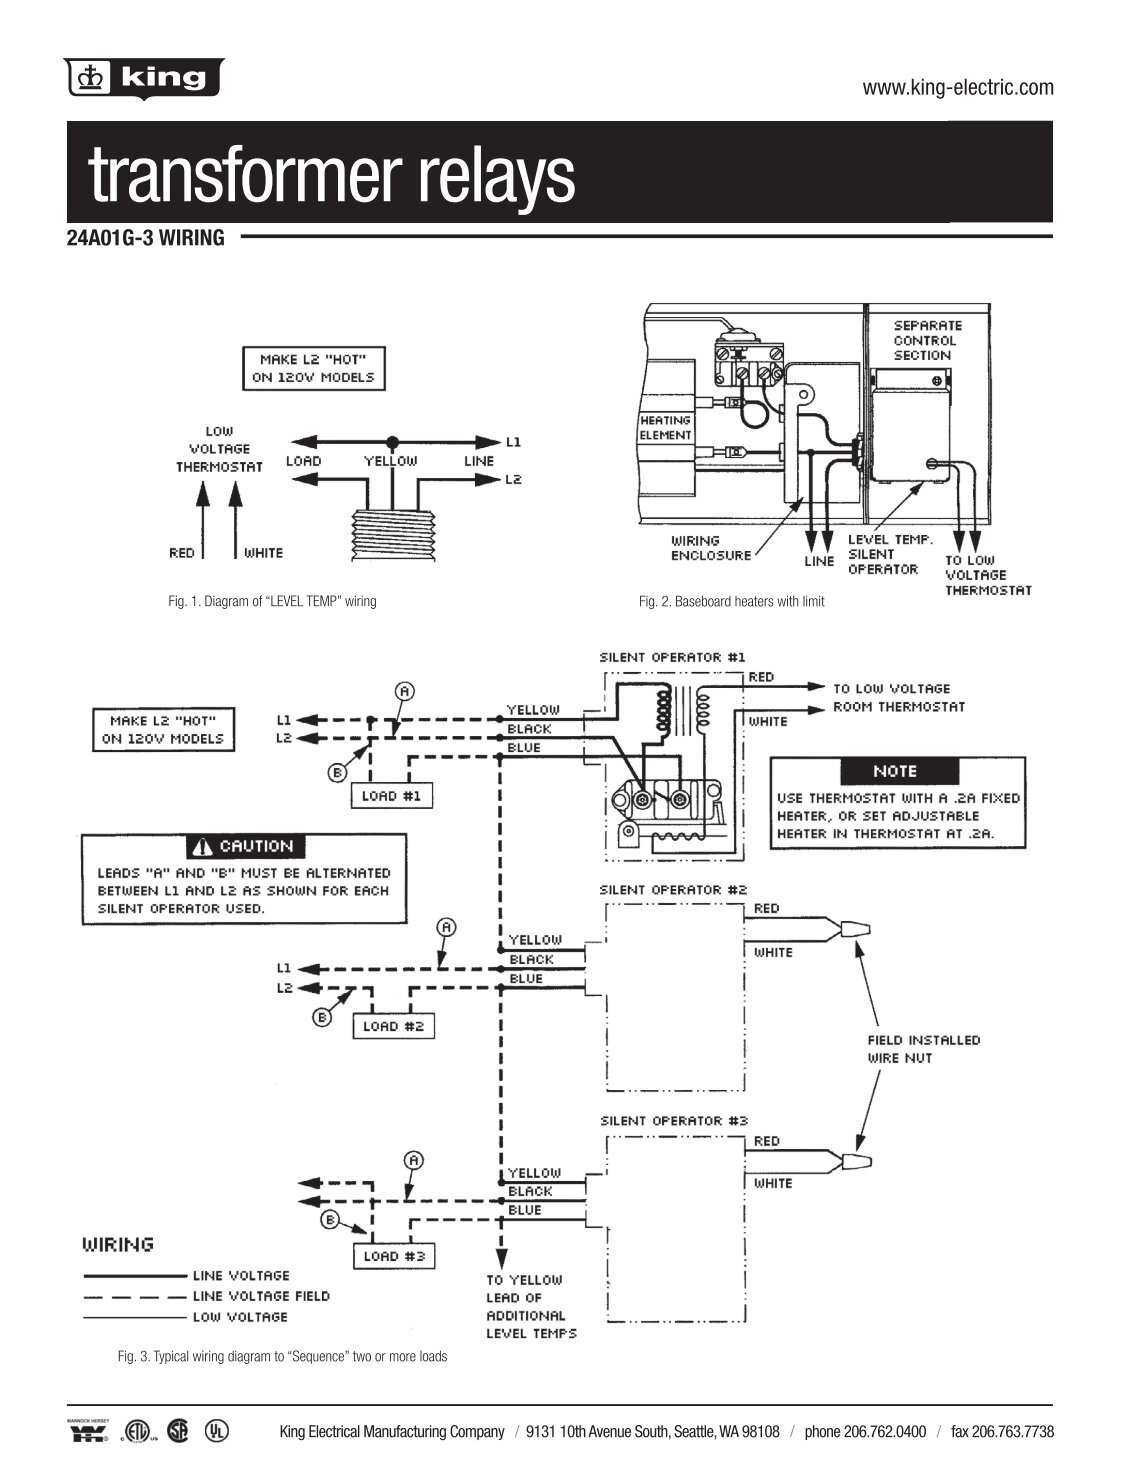 Dorable eb15b electric furnace wiring diagrams image electrical pretty central electric furnace wiring diagram ideas wiring cheapraybanclubmaster Gallery